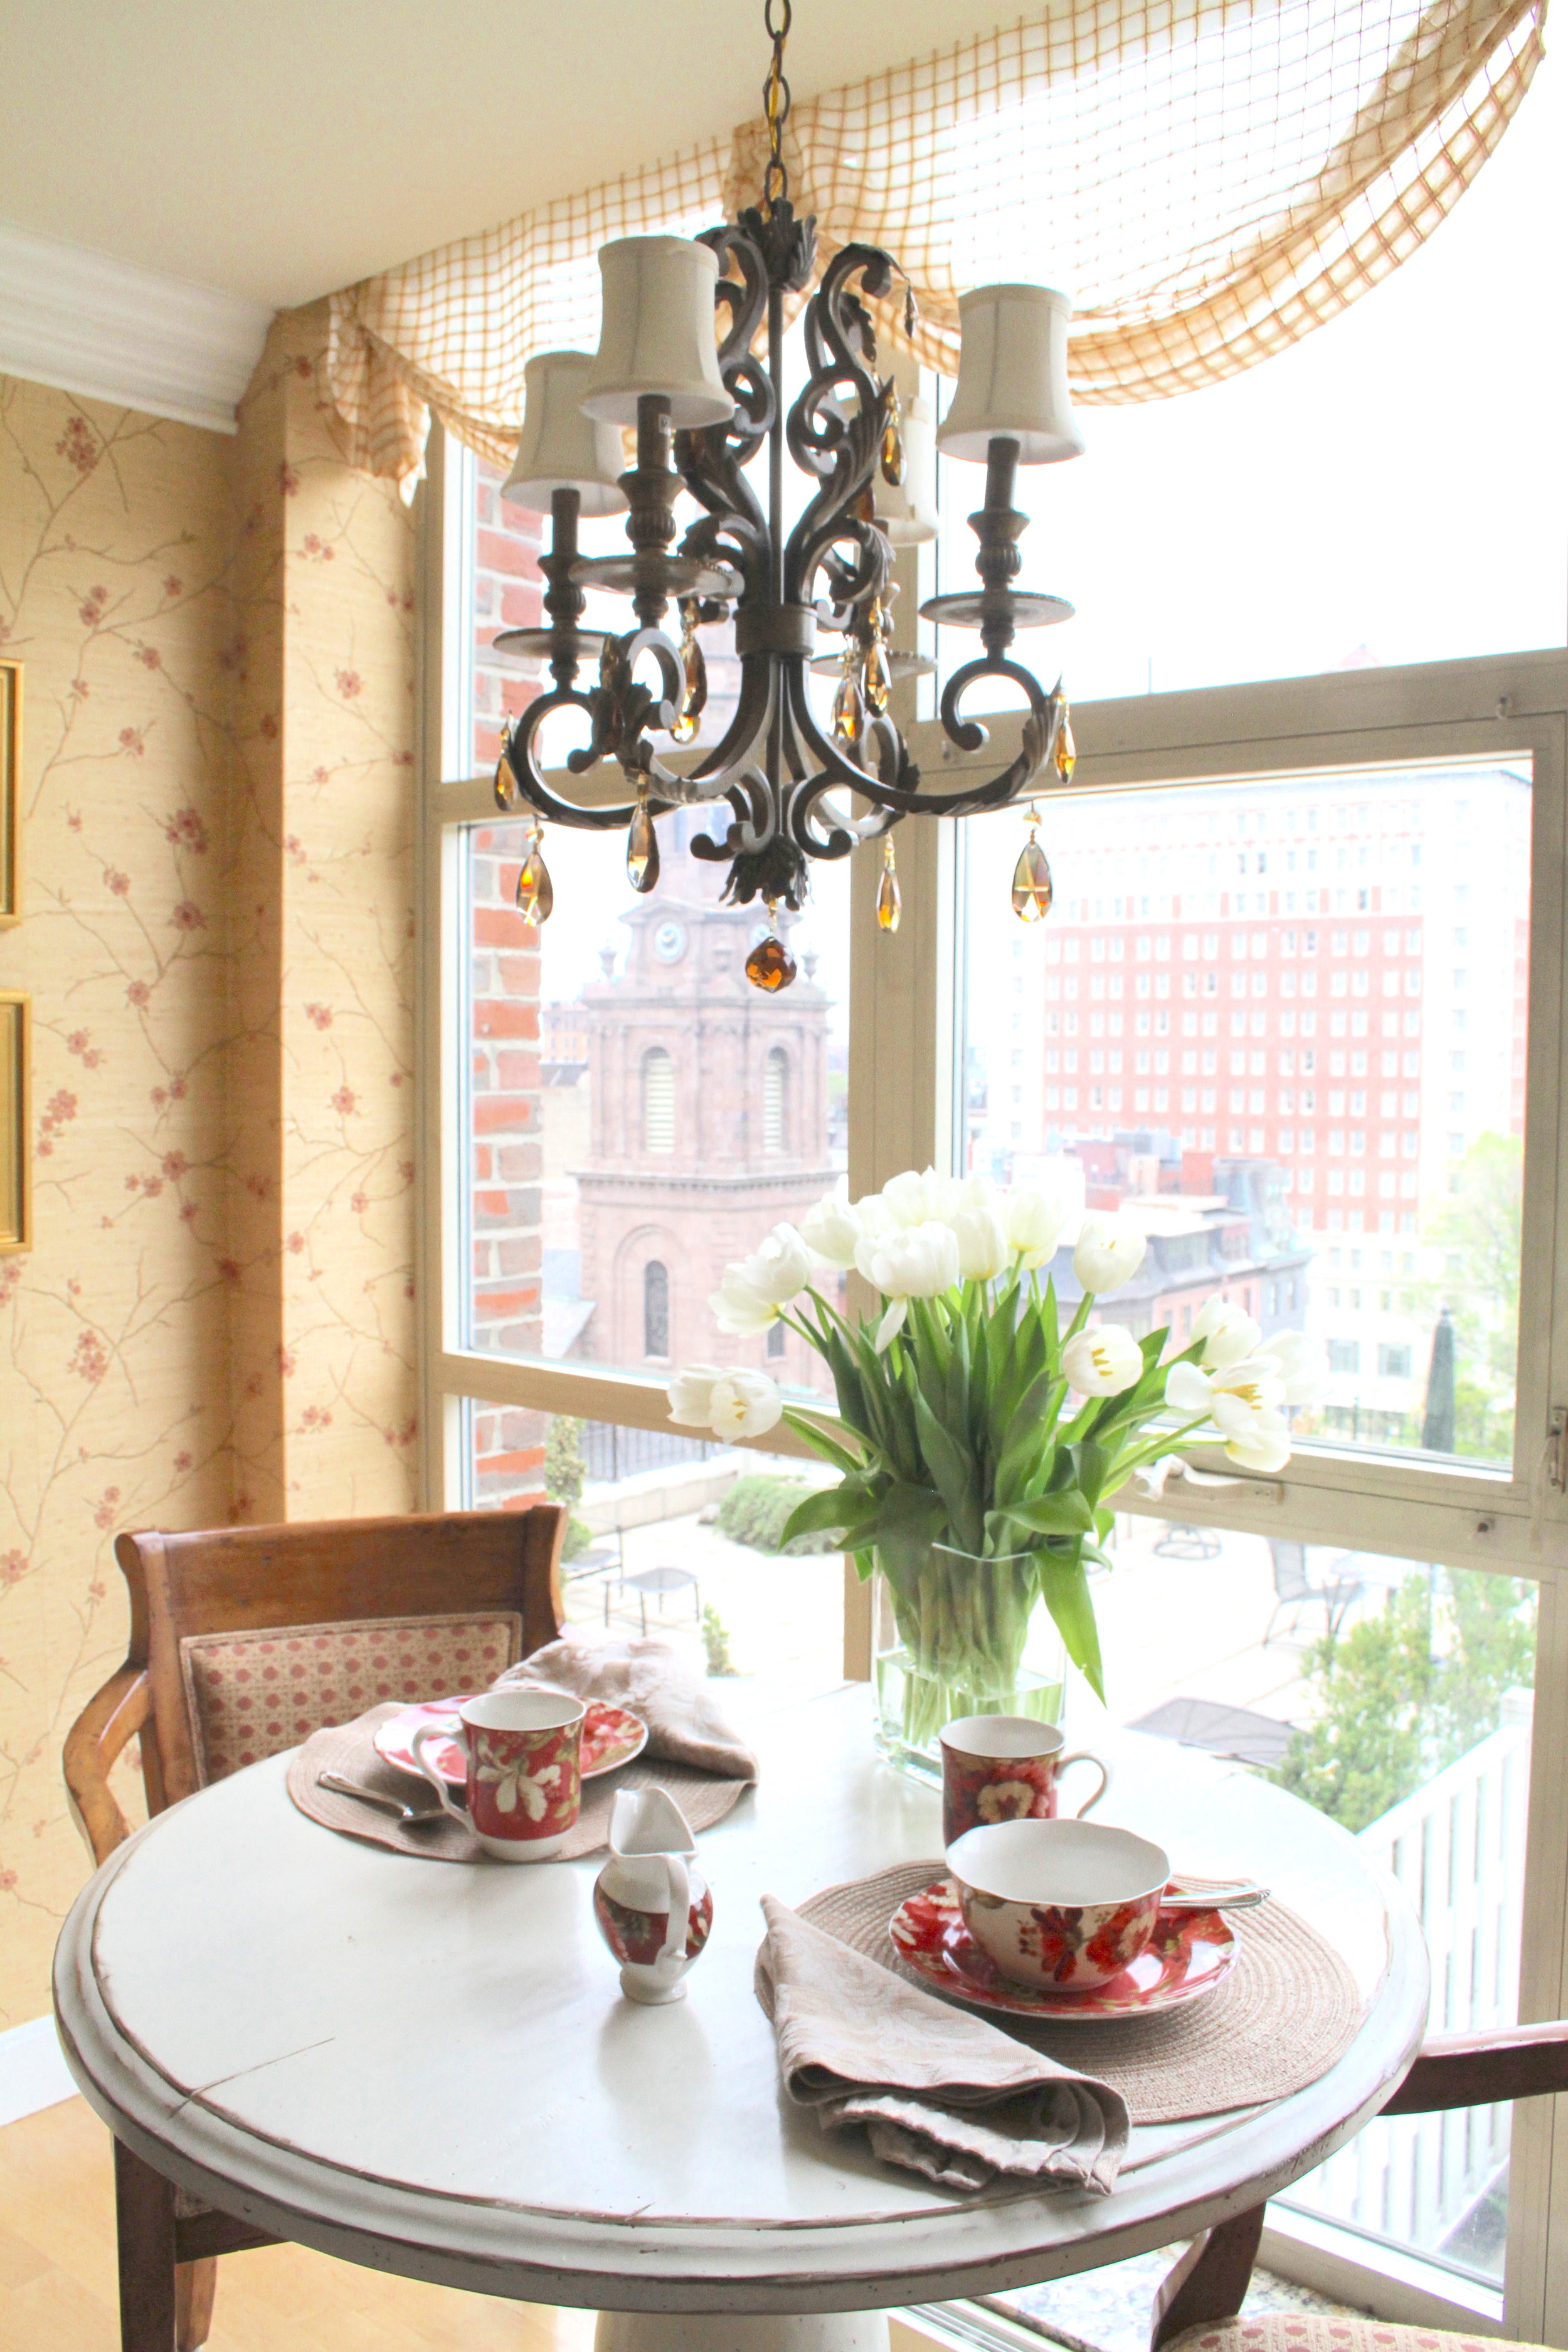 This petite chandelier is just the right scale in this condo breakfast nook over a small table for two overlooking the city.